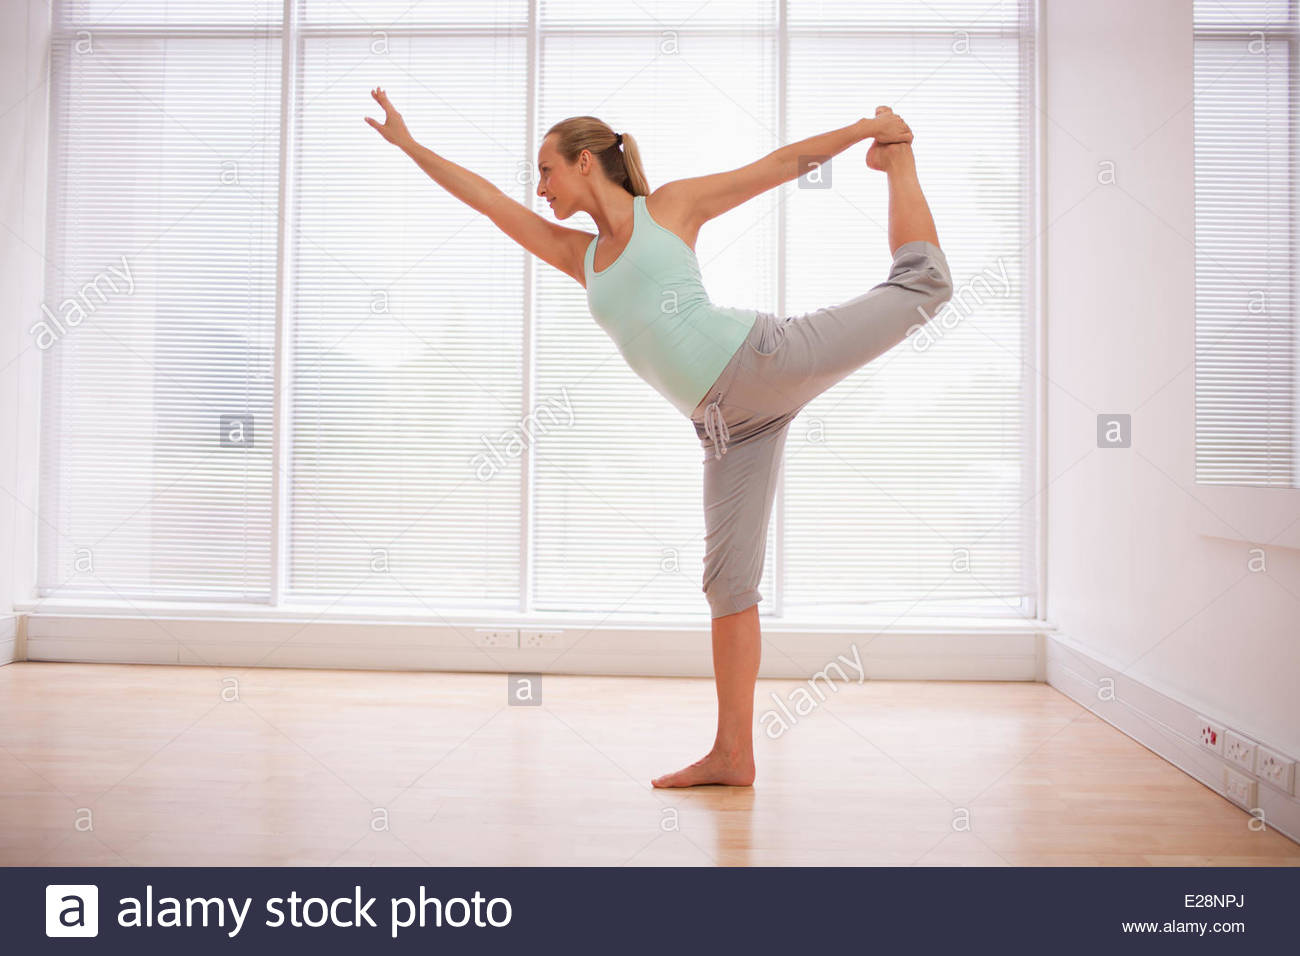 Portrait of smiling woman stretching in fitness studio - Stock Image